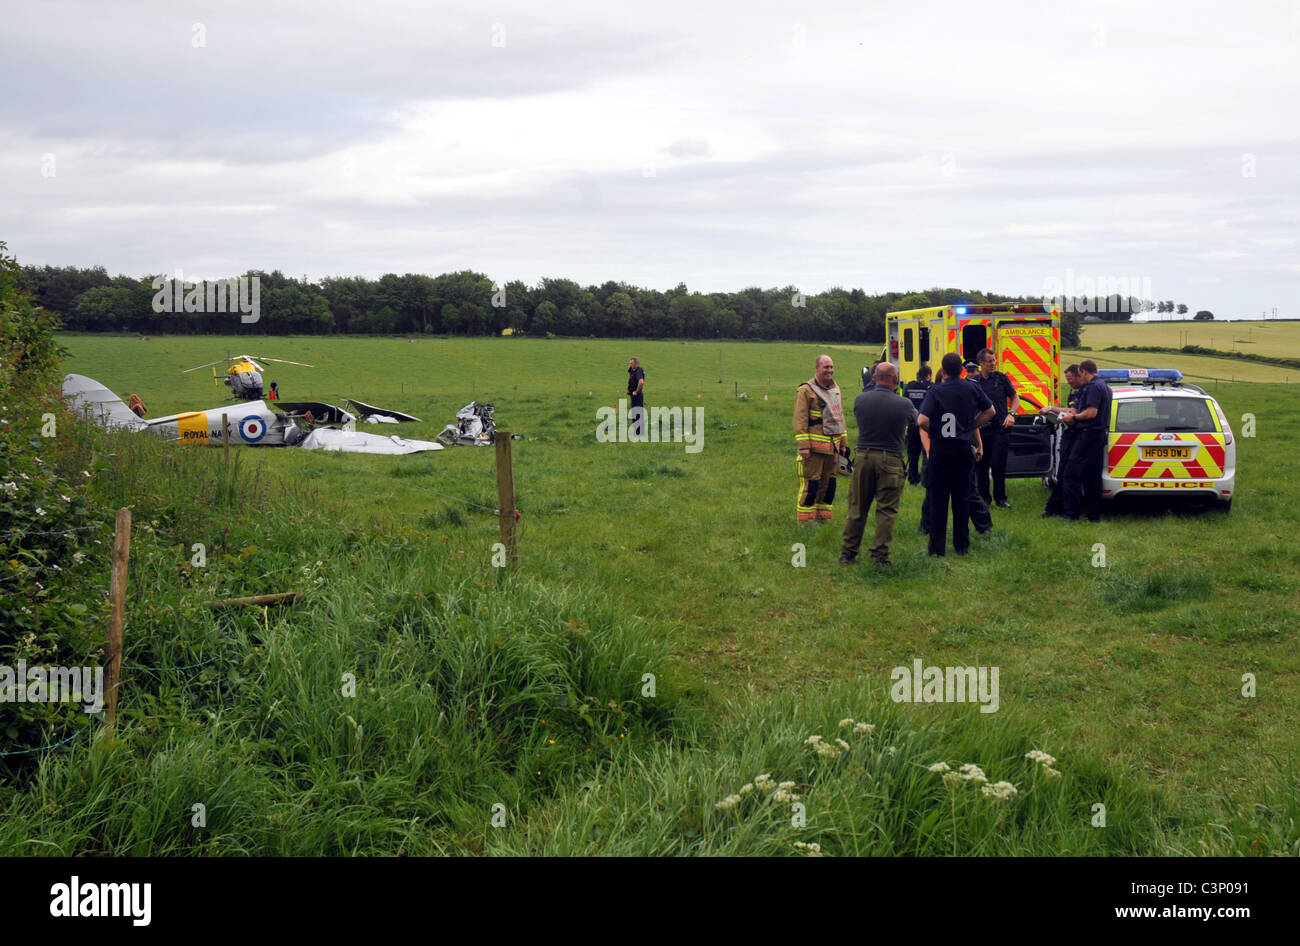 UK, Dorset, Two crew were fighting for their lives after their vintage Tiger Moth bi-plane crashed to the ground - Stock Image